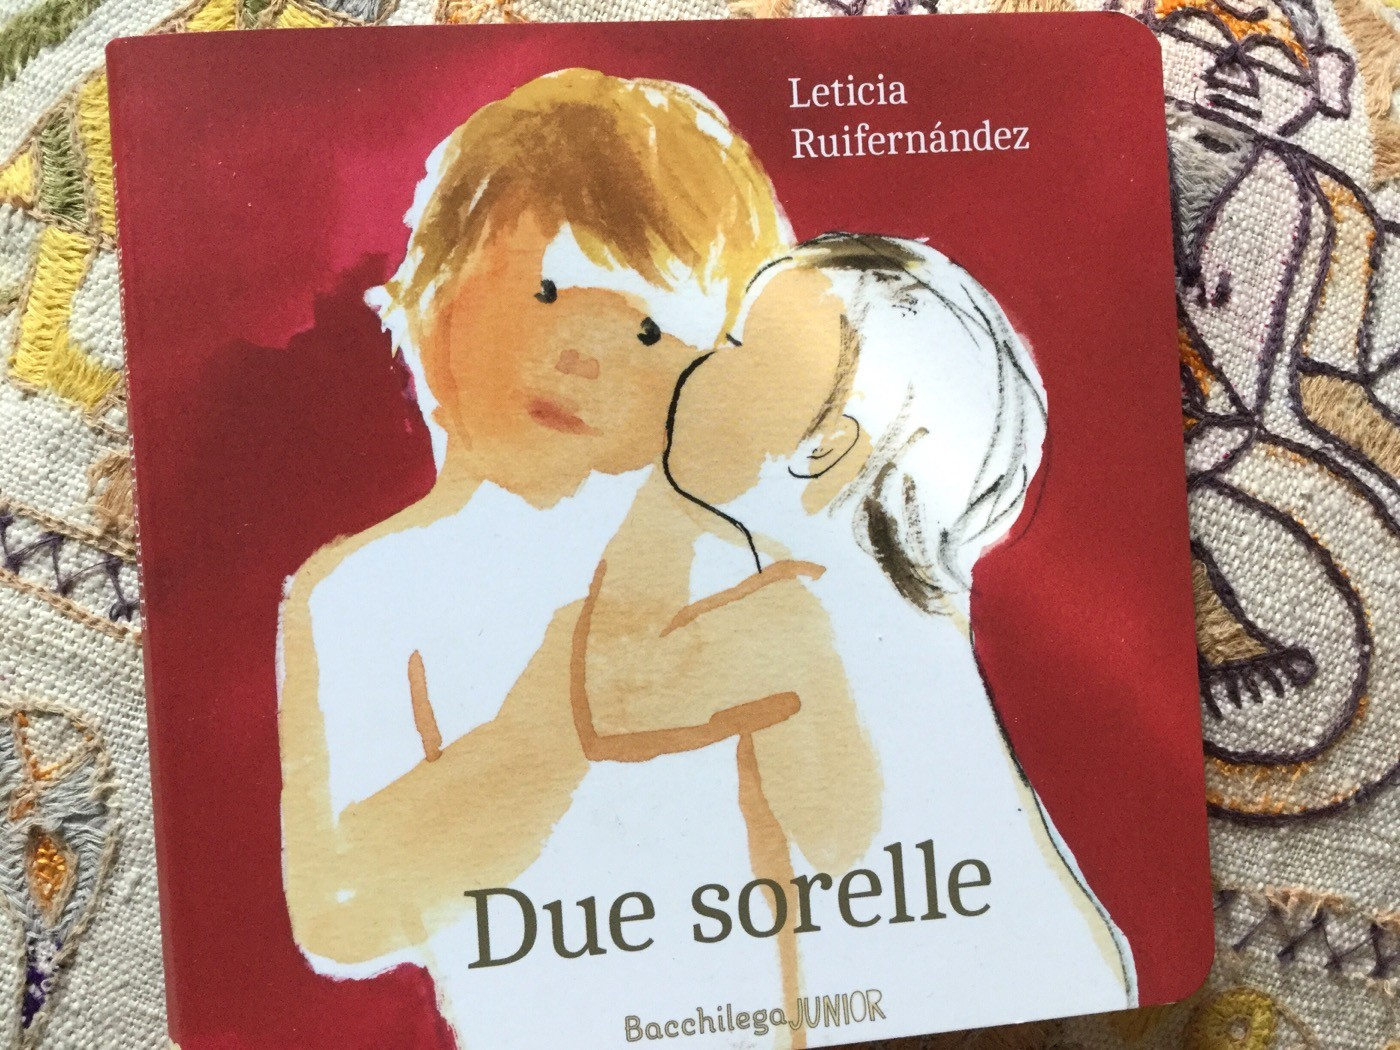 Due sorelle | Leticia Ruifernàndez | Bacchilega Junior - Galline Volanti